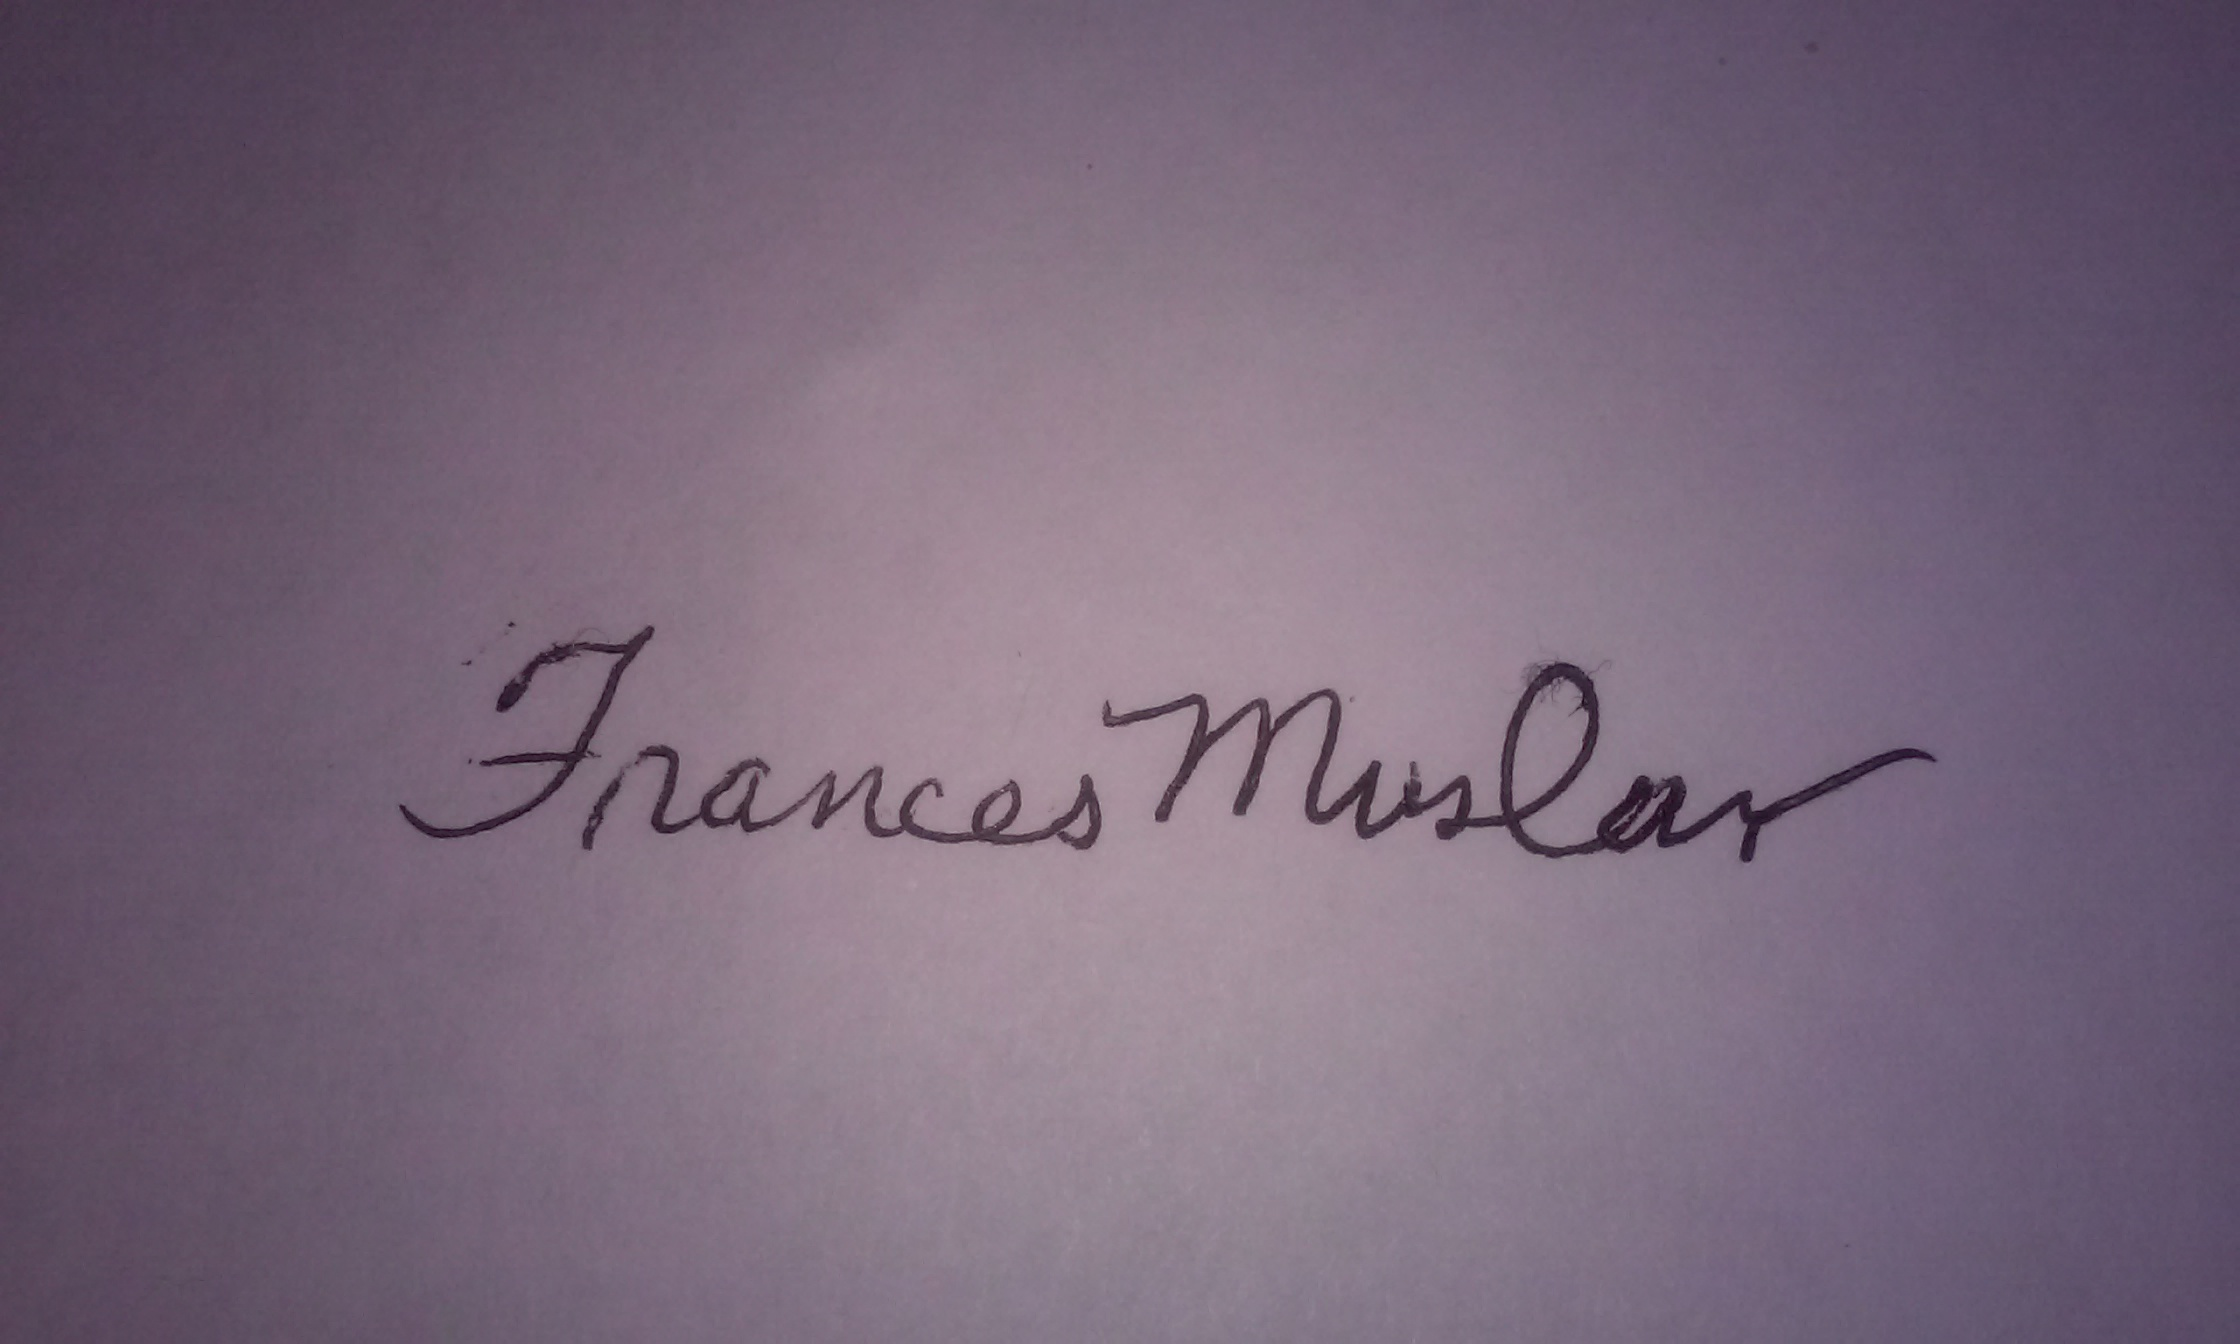 Frances Muslar's Signature